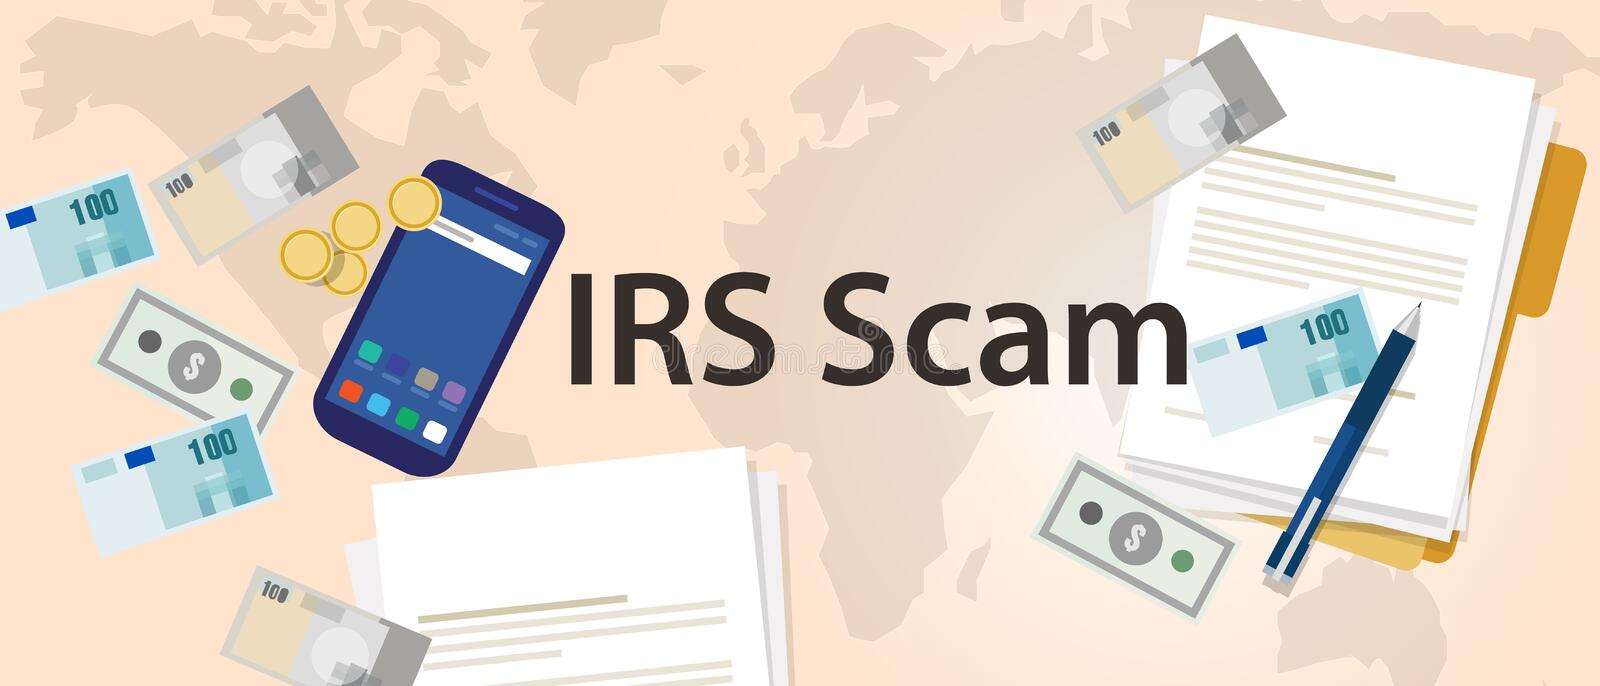 IRS tax scam via phone security fraud illustration paper and money. IRS tax scam via phone security fraud vector illustration paper and money royalty free illustration